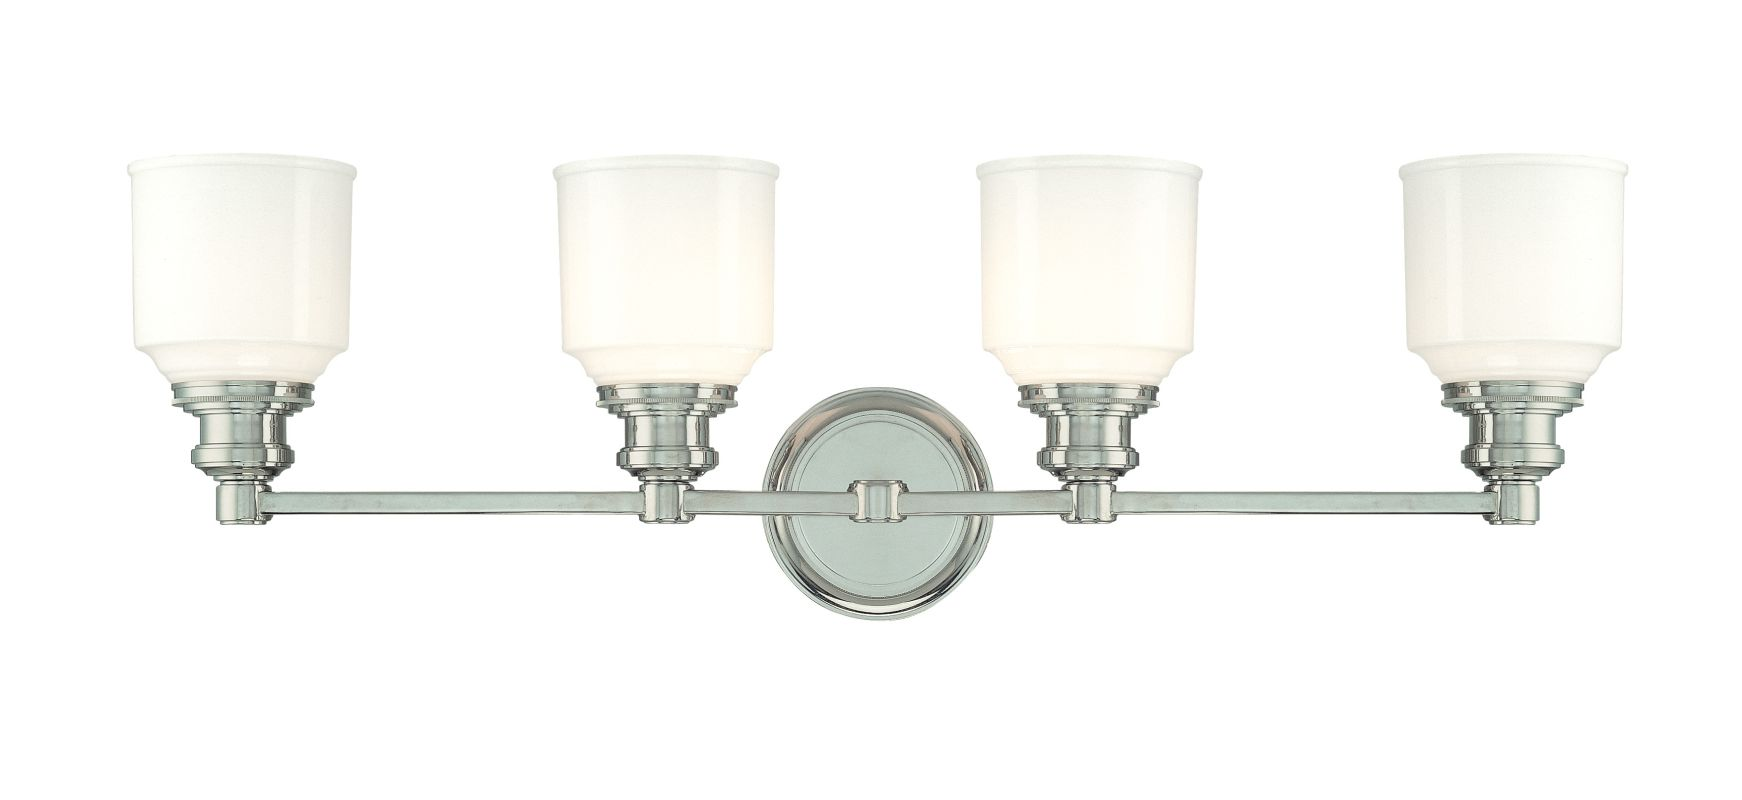 Hudson Valley Lighting 3404 Four Light Wall Sconce from the Windham Sale $450.00 ITEM: bci982519 ID#:3404-PN UPC: 806134096663 :